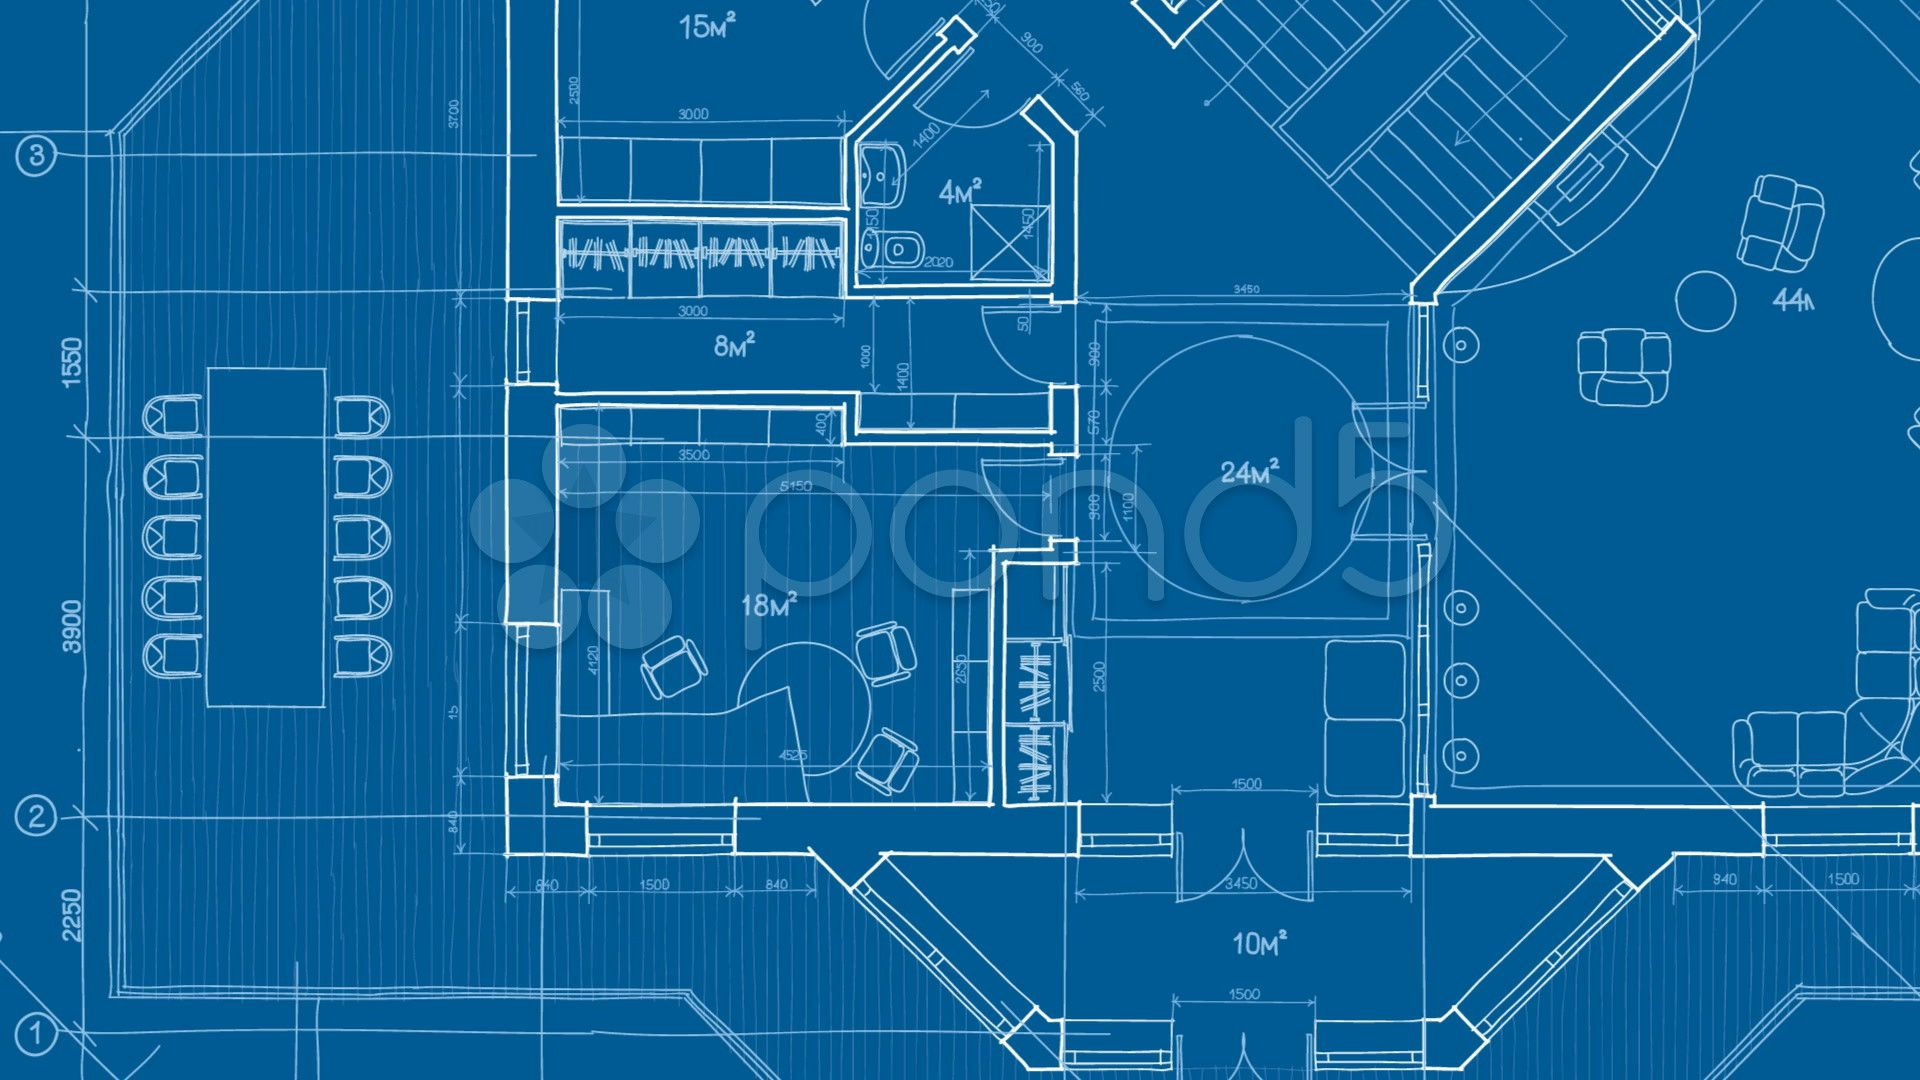 House Blueprint Wallpaper Elegant Architecture Blueprint Hd 4k Stock Footage Architecture Blueprints House Blueprints Blueprints